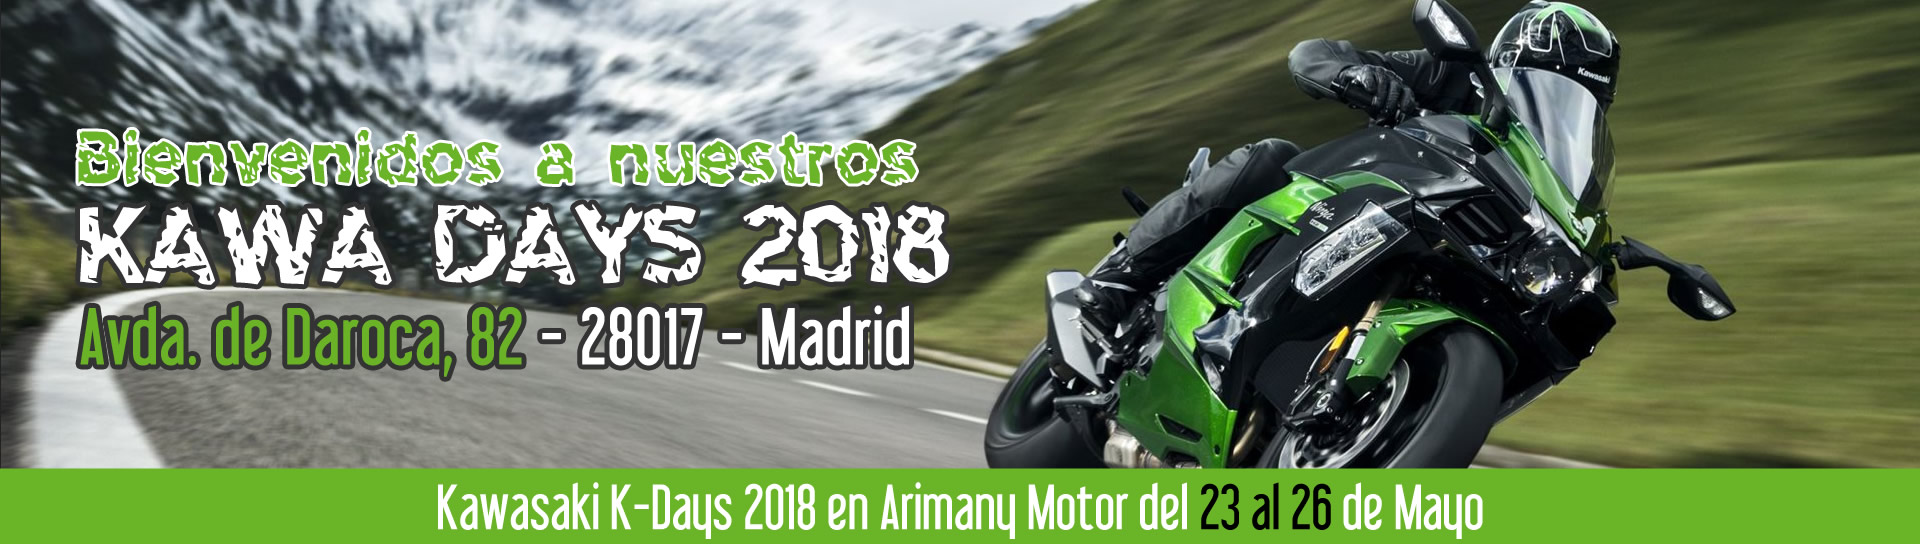 Kawa Days 2018 Madrid